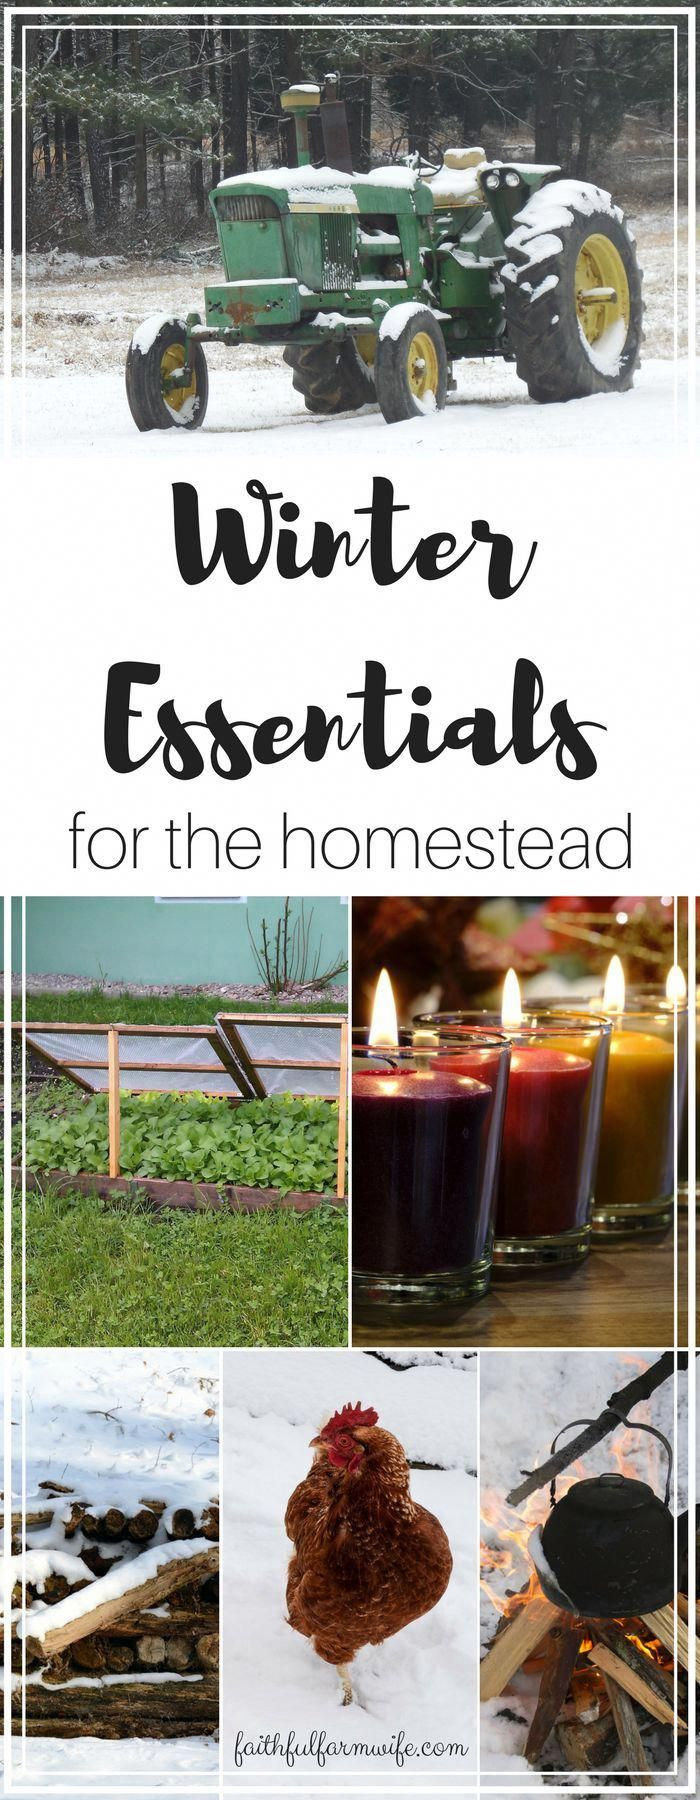 Everything on the homestead has to be prepped to survive the cold or you lose time, money, and lives. What do you consider winter homestead essentials? #surviveonyourown #wintersurvivalsupplies